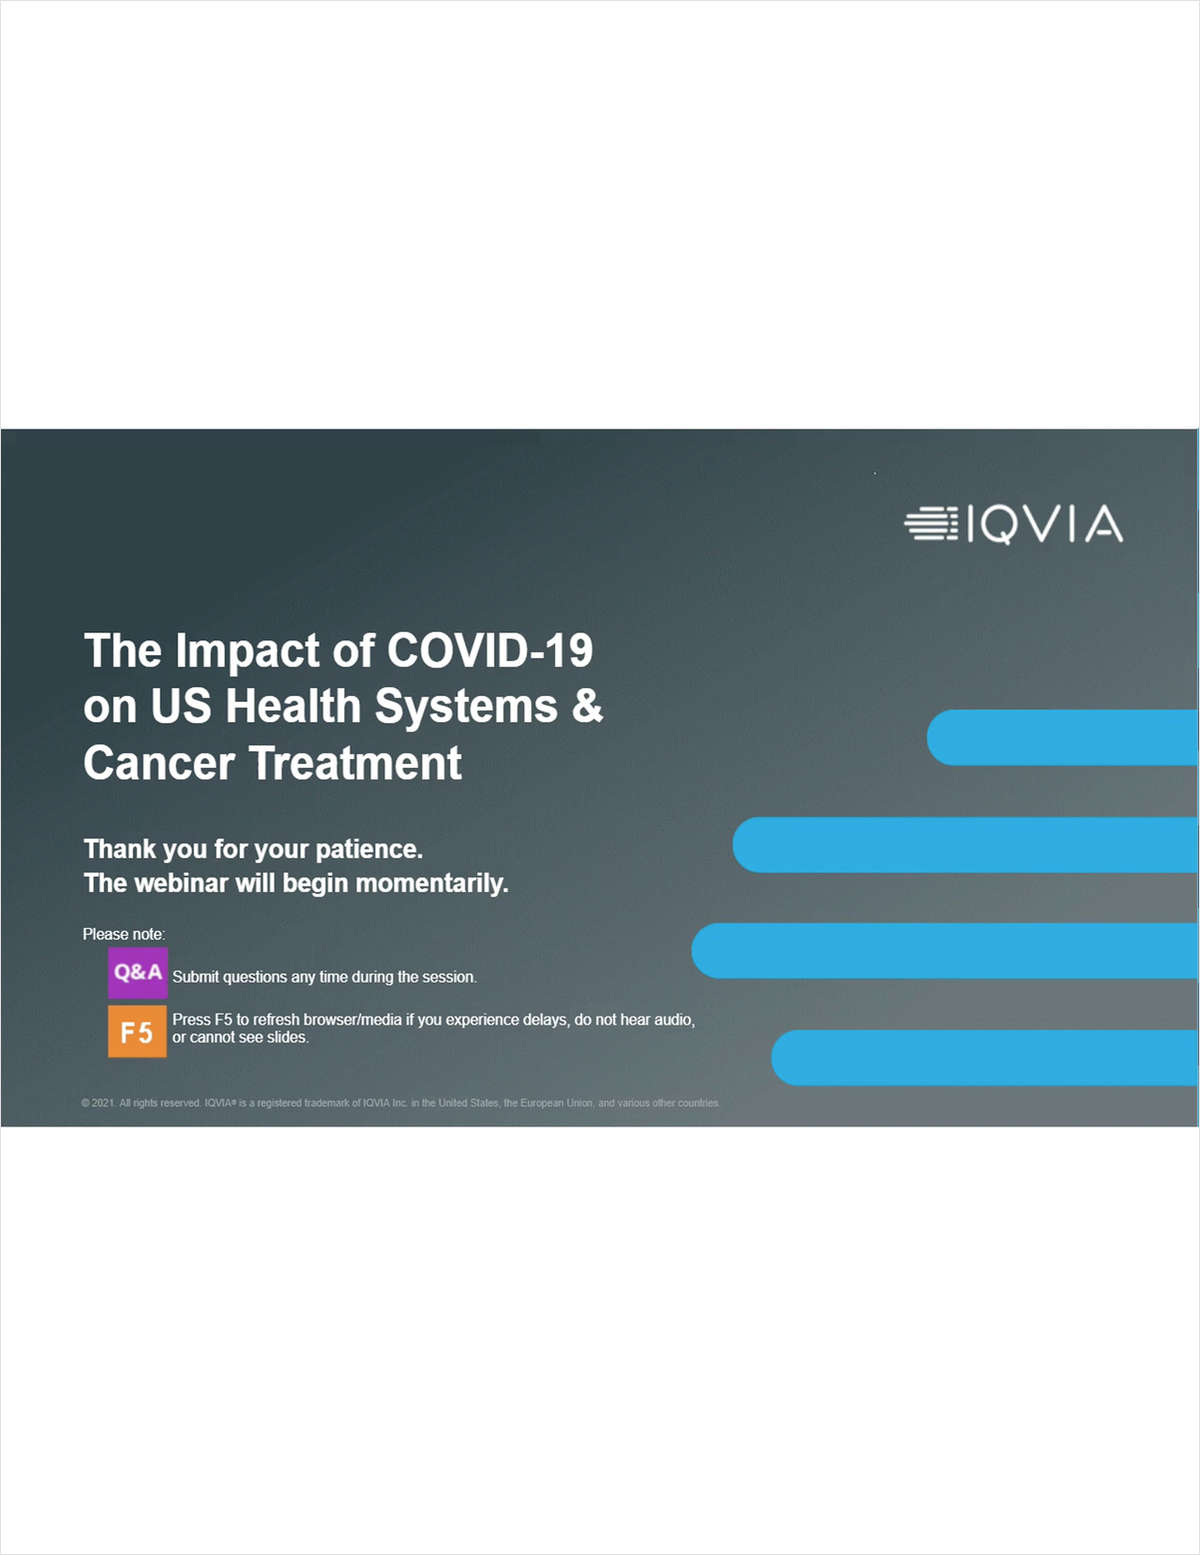 The Impact of Covid-19 on US Health Systems & Cancer Treatment